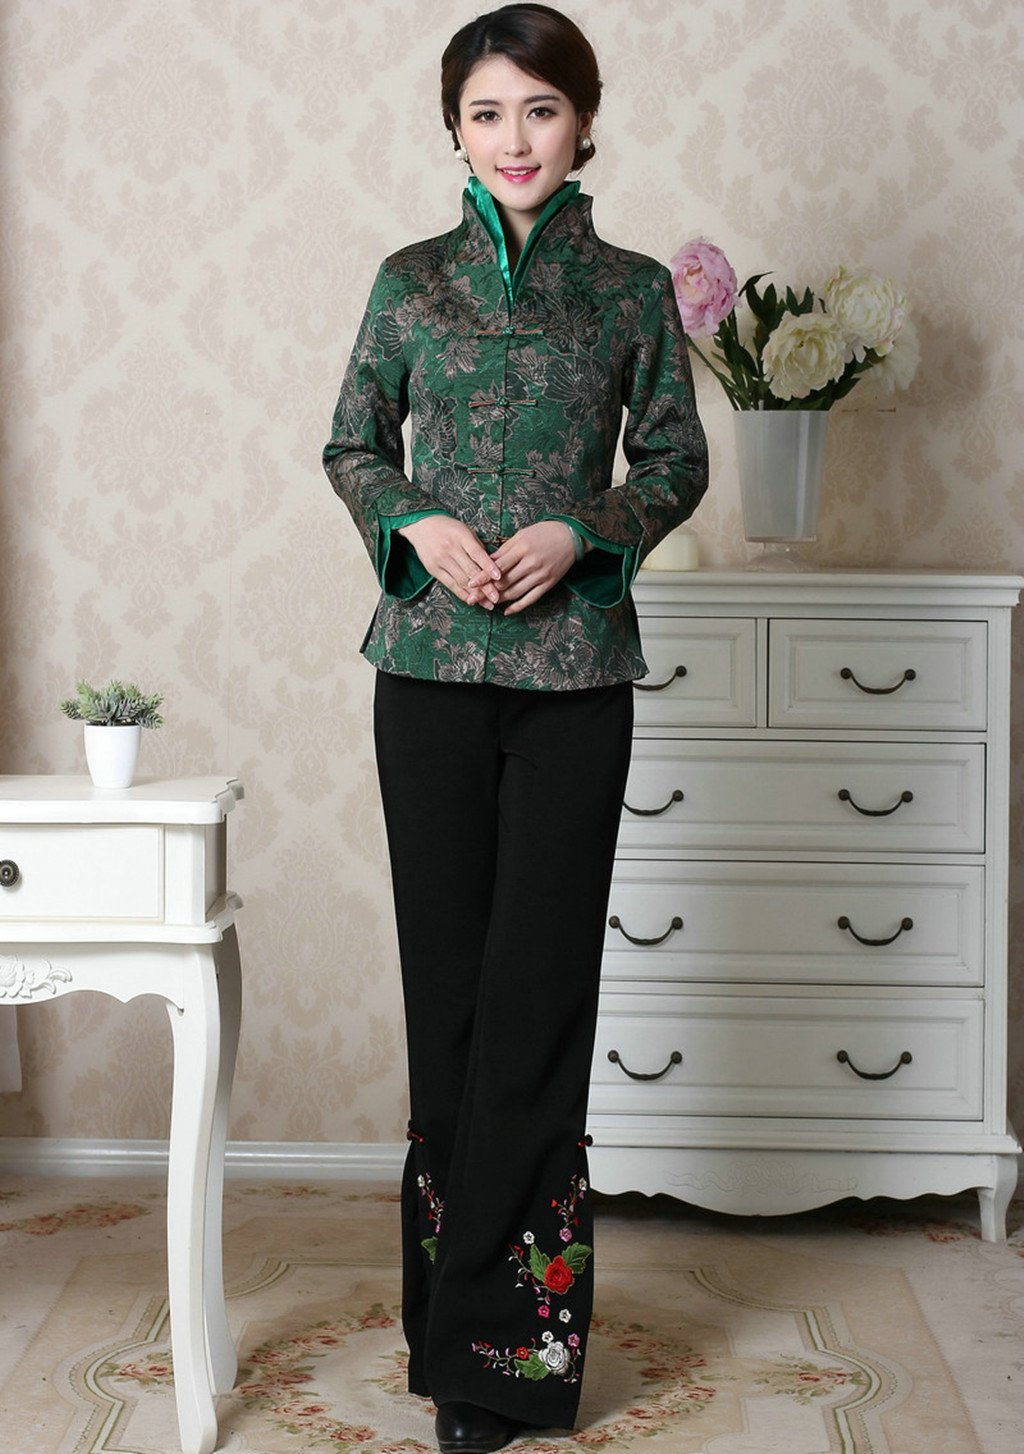 Womens Tang Suits Chinese Style Coats Retro Jackets Full Dress Formal Dress Womens Jackets Business Jackets by Womens Tang Suit (Image #5)